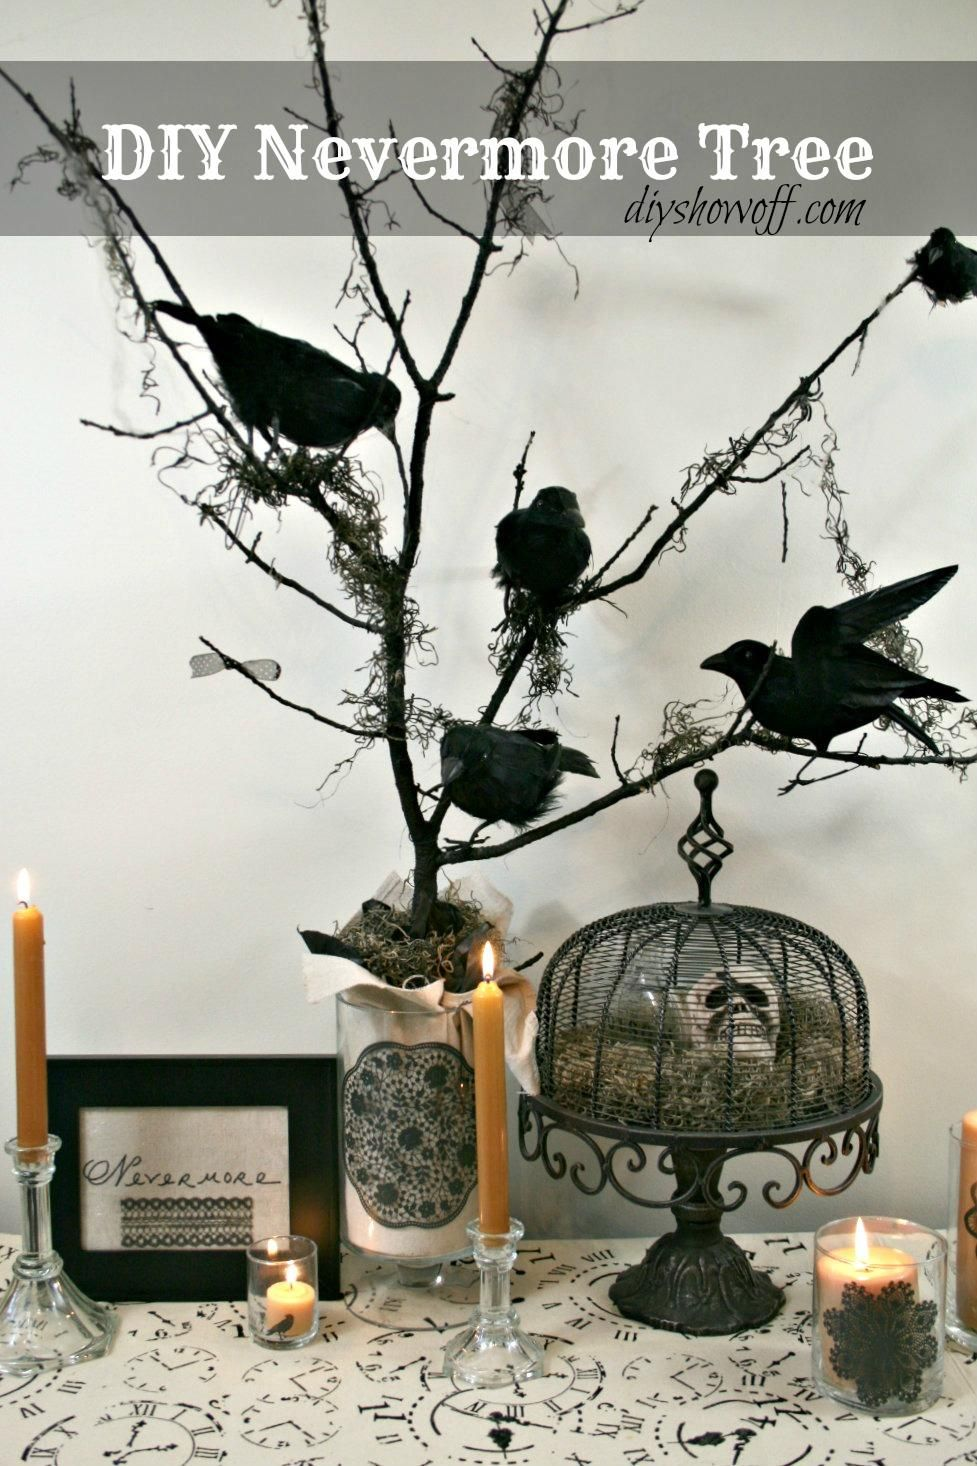 Halloween decorations  DIY Halloween Nevermore Tree decor - Decorating For Halloween